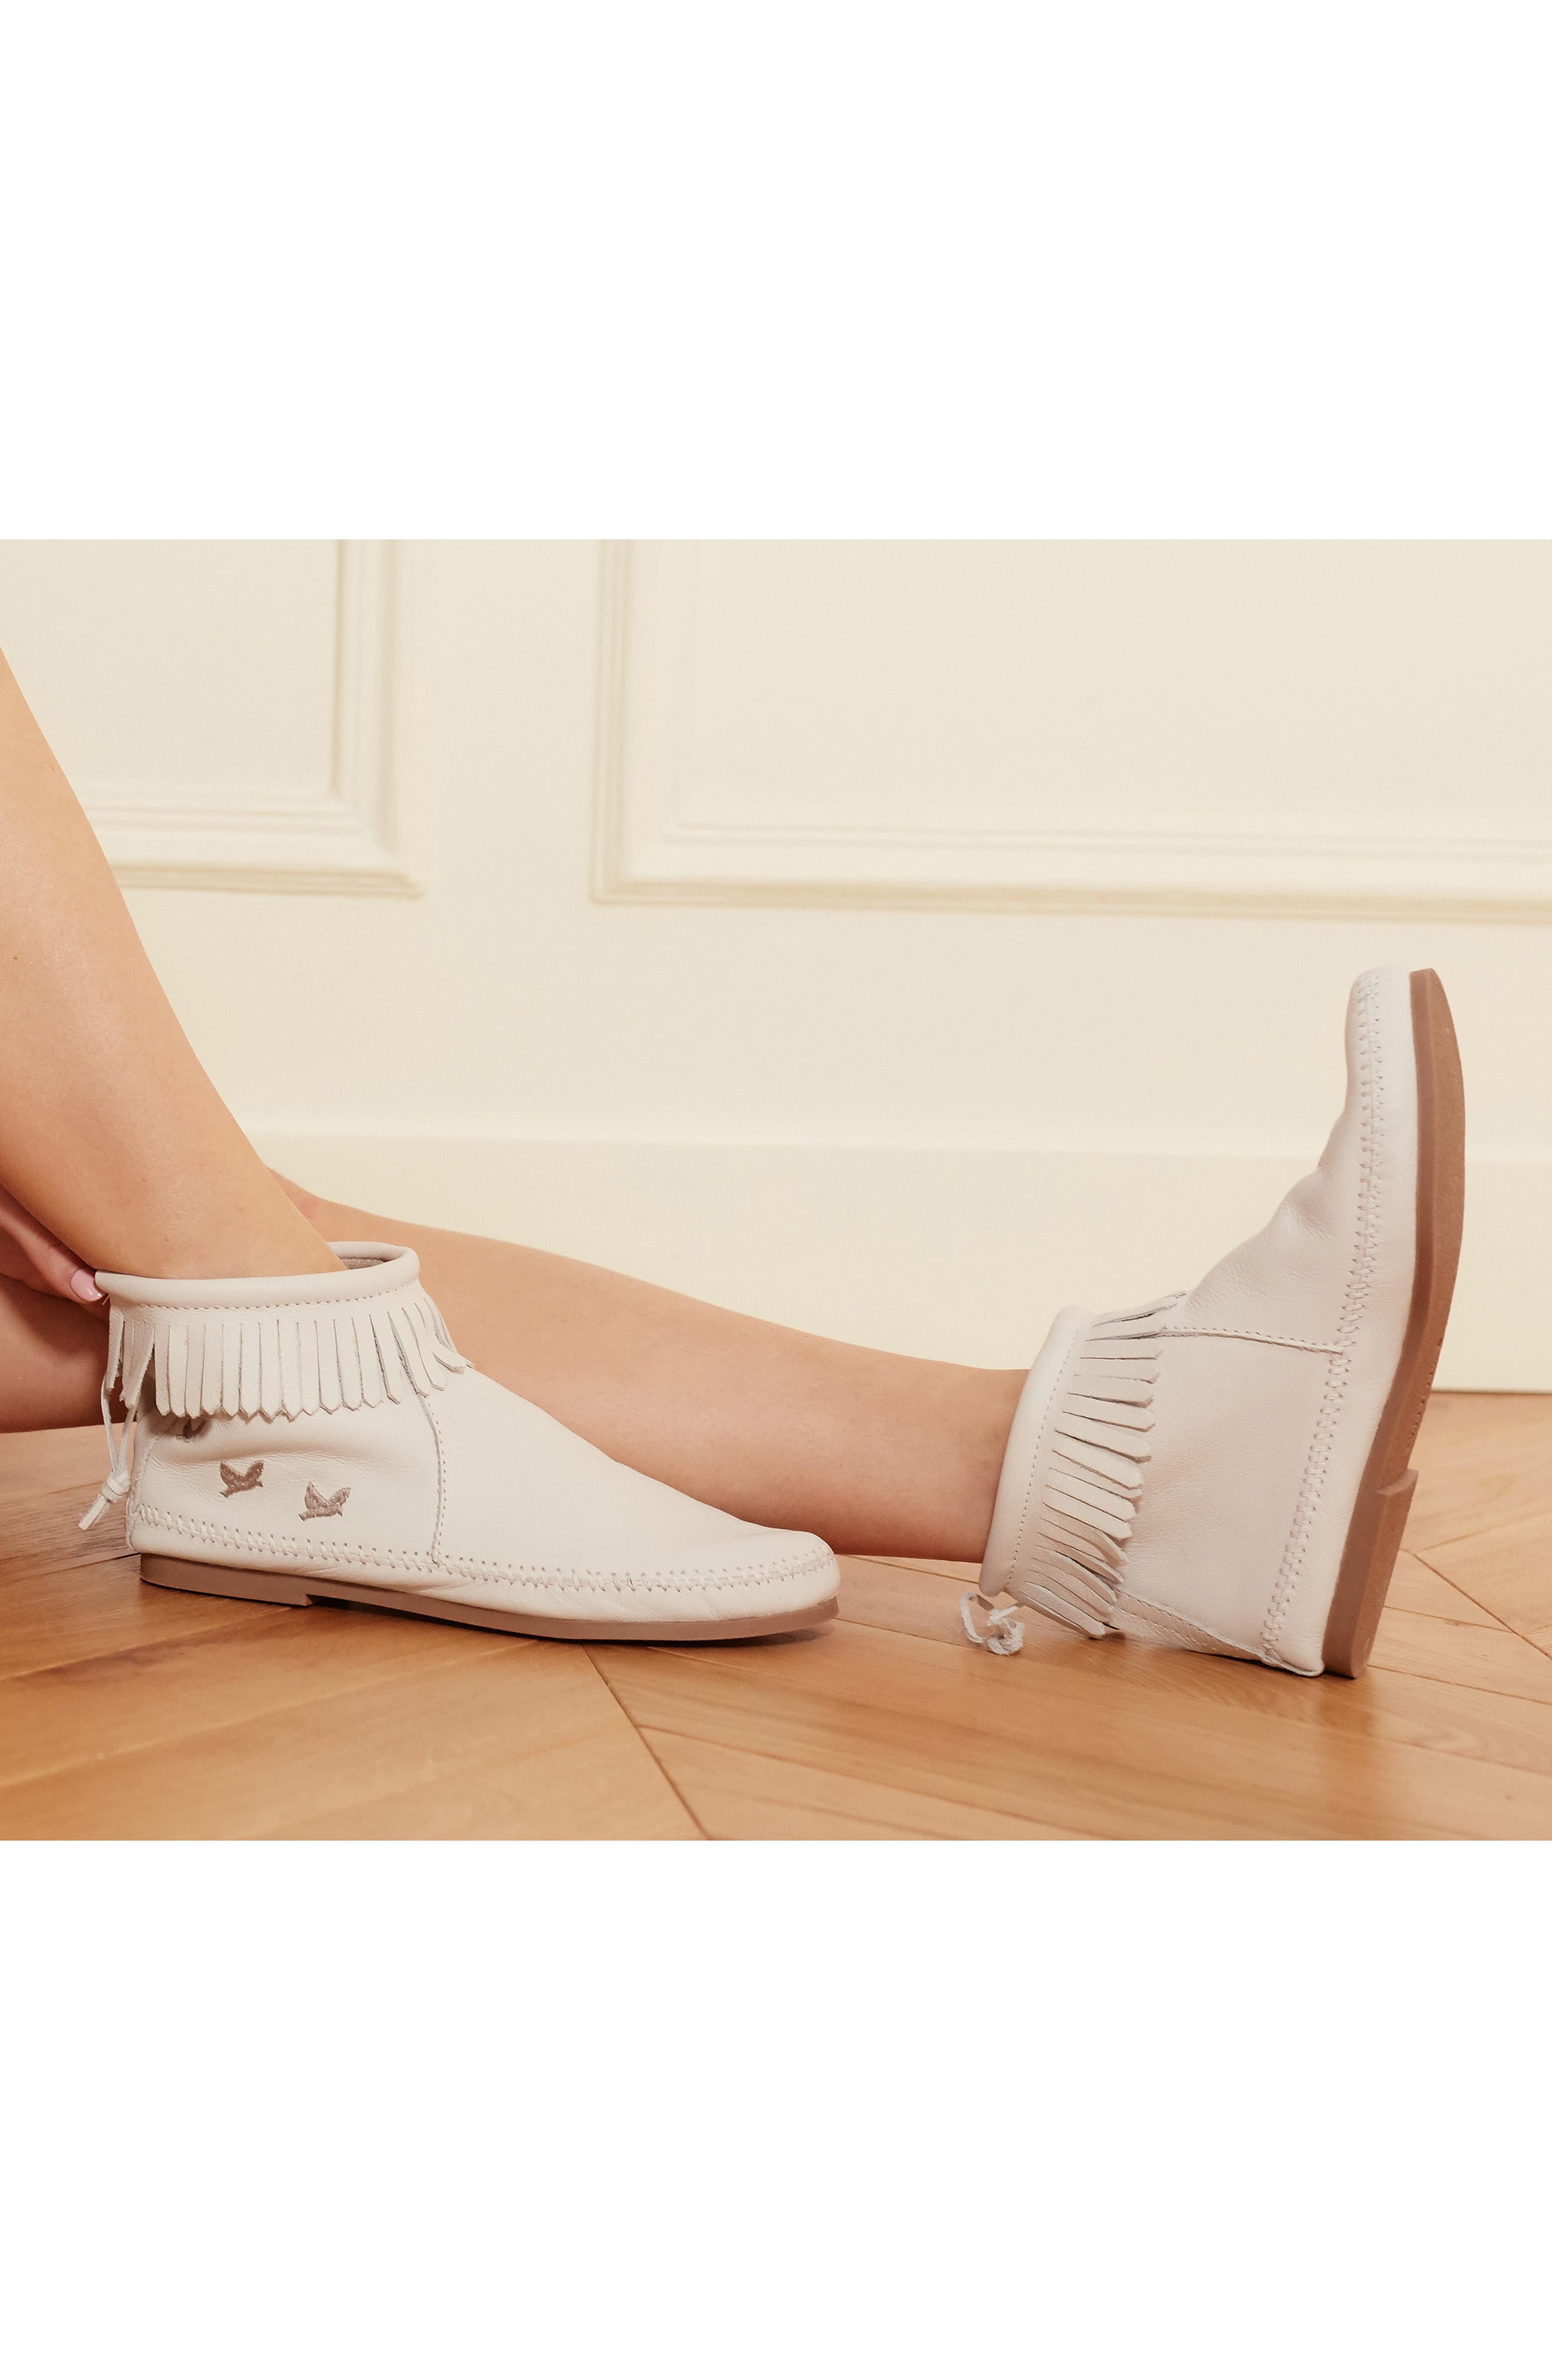 MINNETONKA, x Lottie Moss Lauryn Fringe Bootie, Alternate thumbnail 9, color, WHITE LEATHER